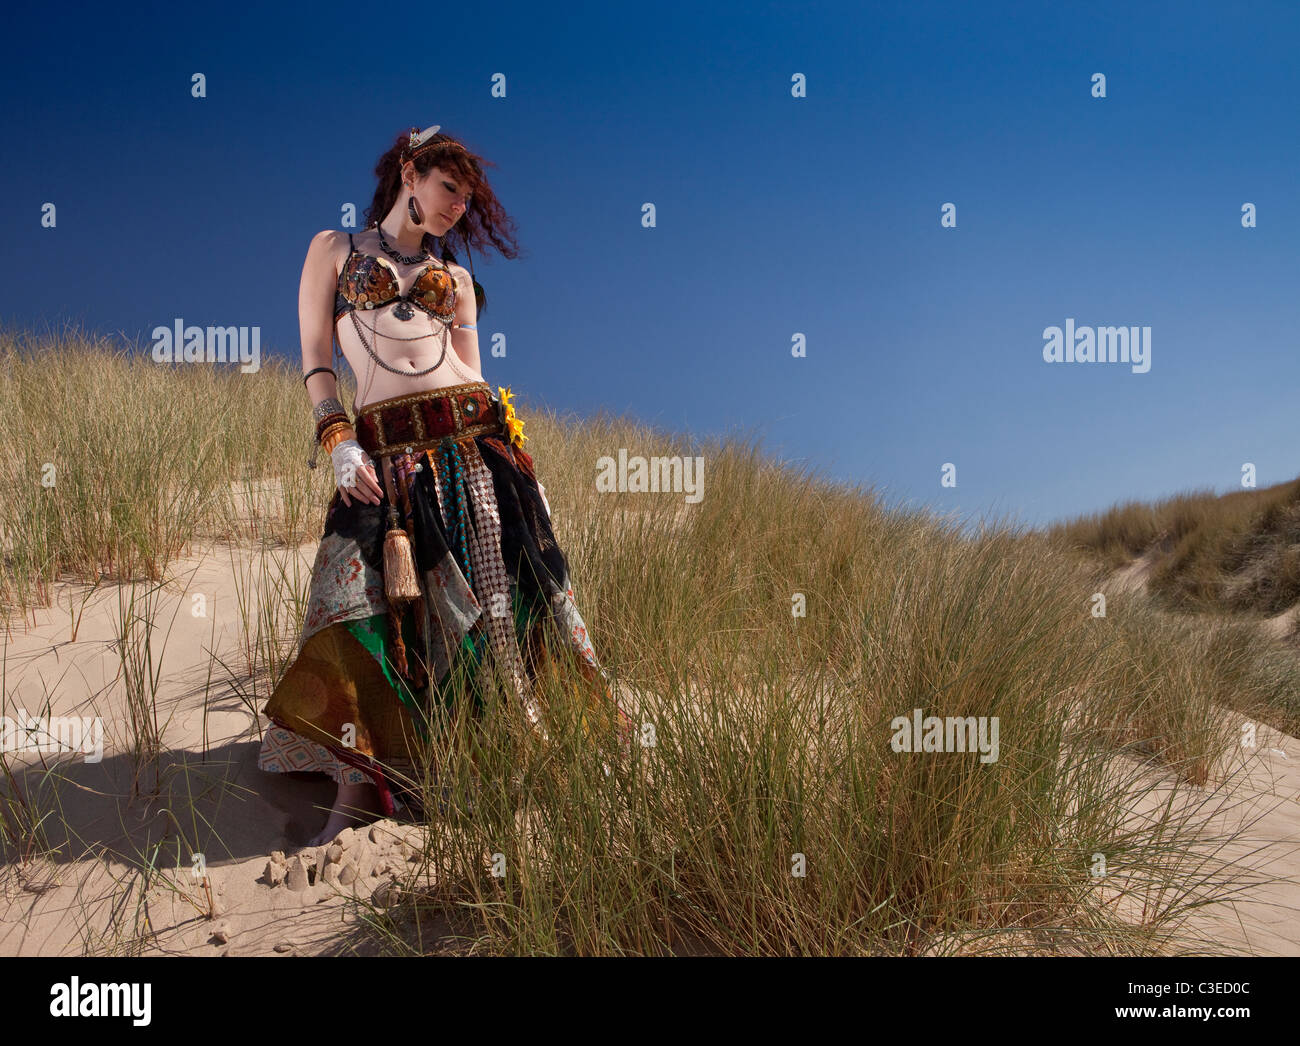 Beautiful young Tribal 'Belly Dancer' strikes pose against dramatic sky and beach in tribal clothing, UK. - Stock Image